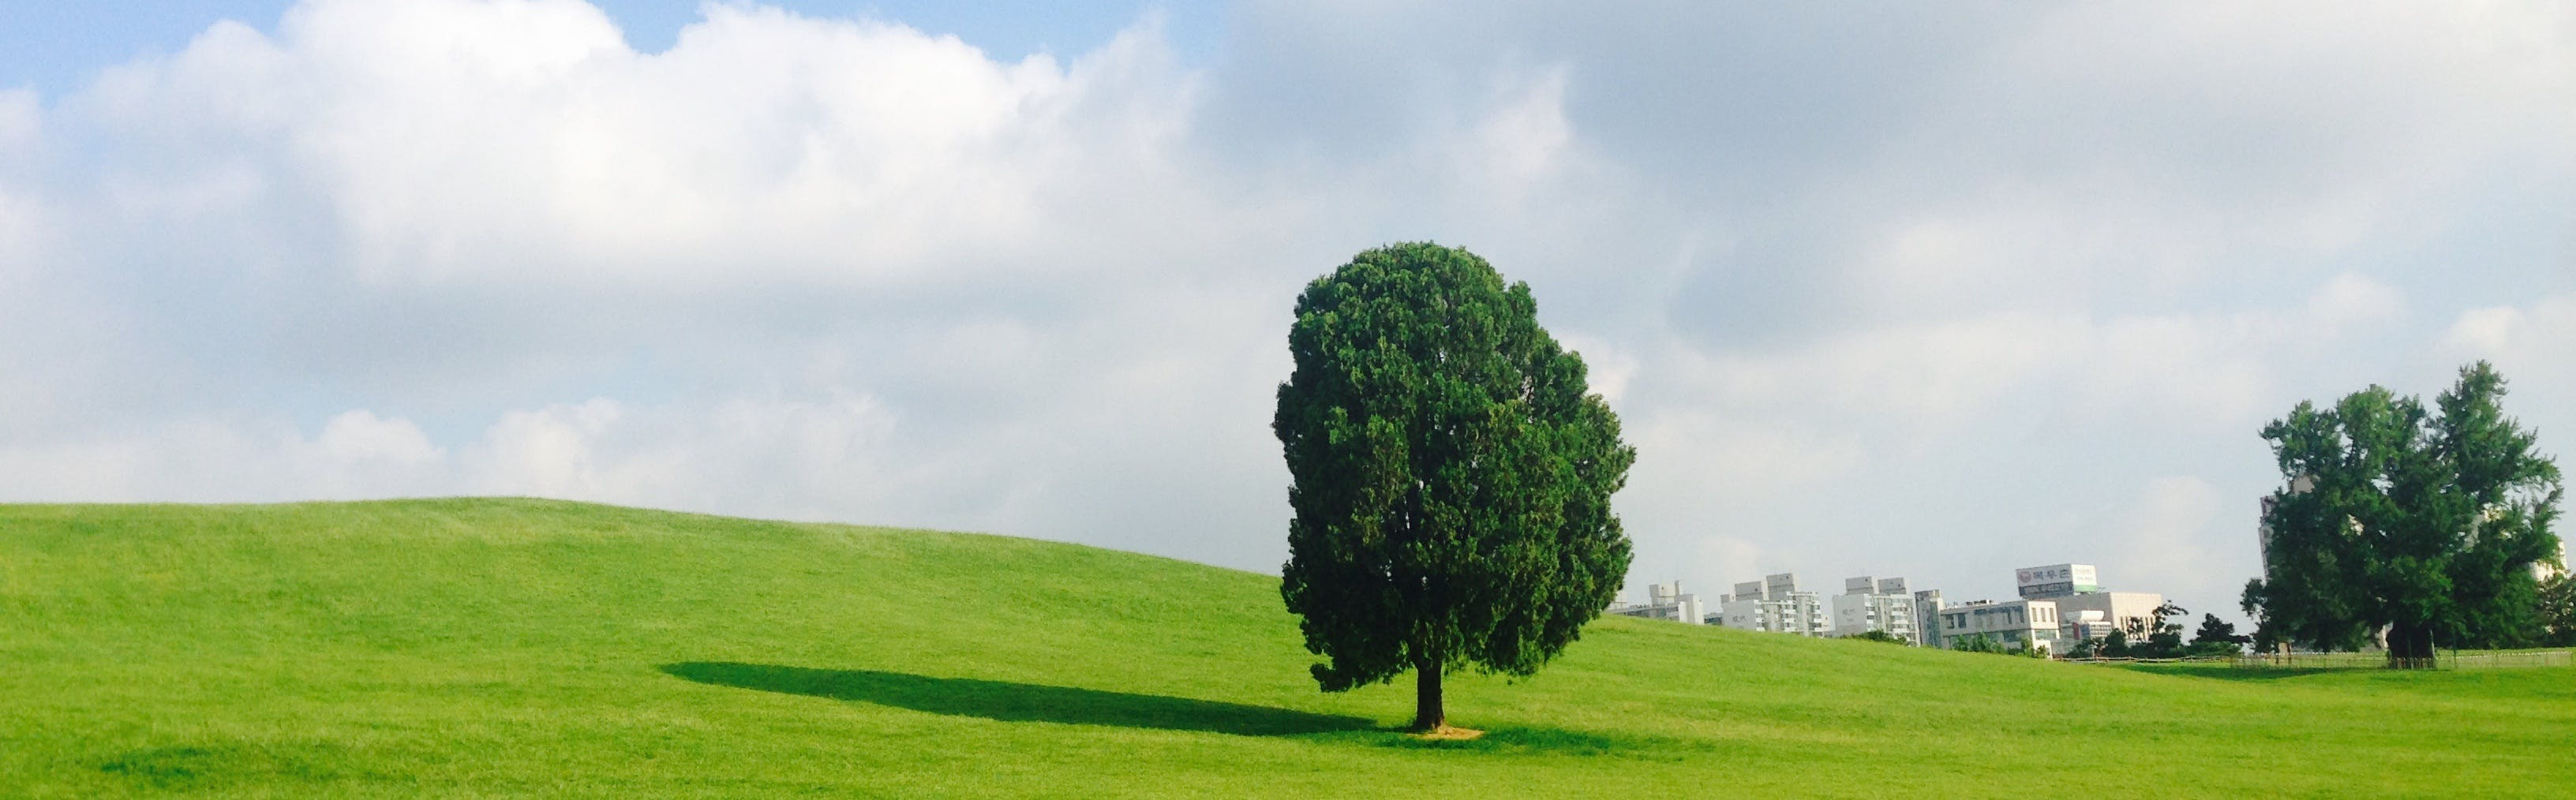 Free stock photo of olympic park, seoul olympic park, alone tree, early wood